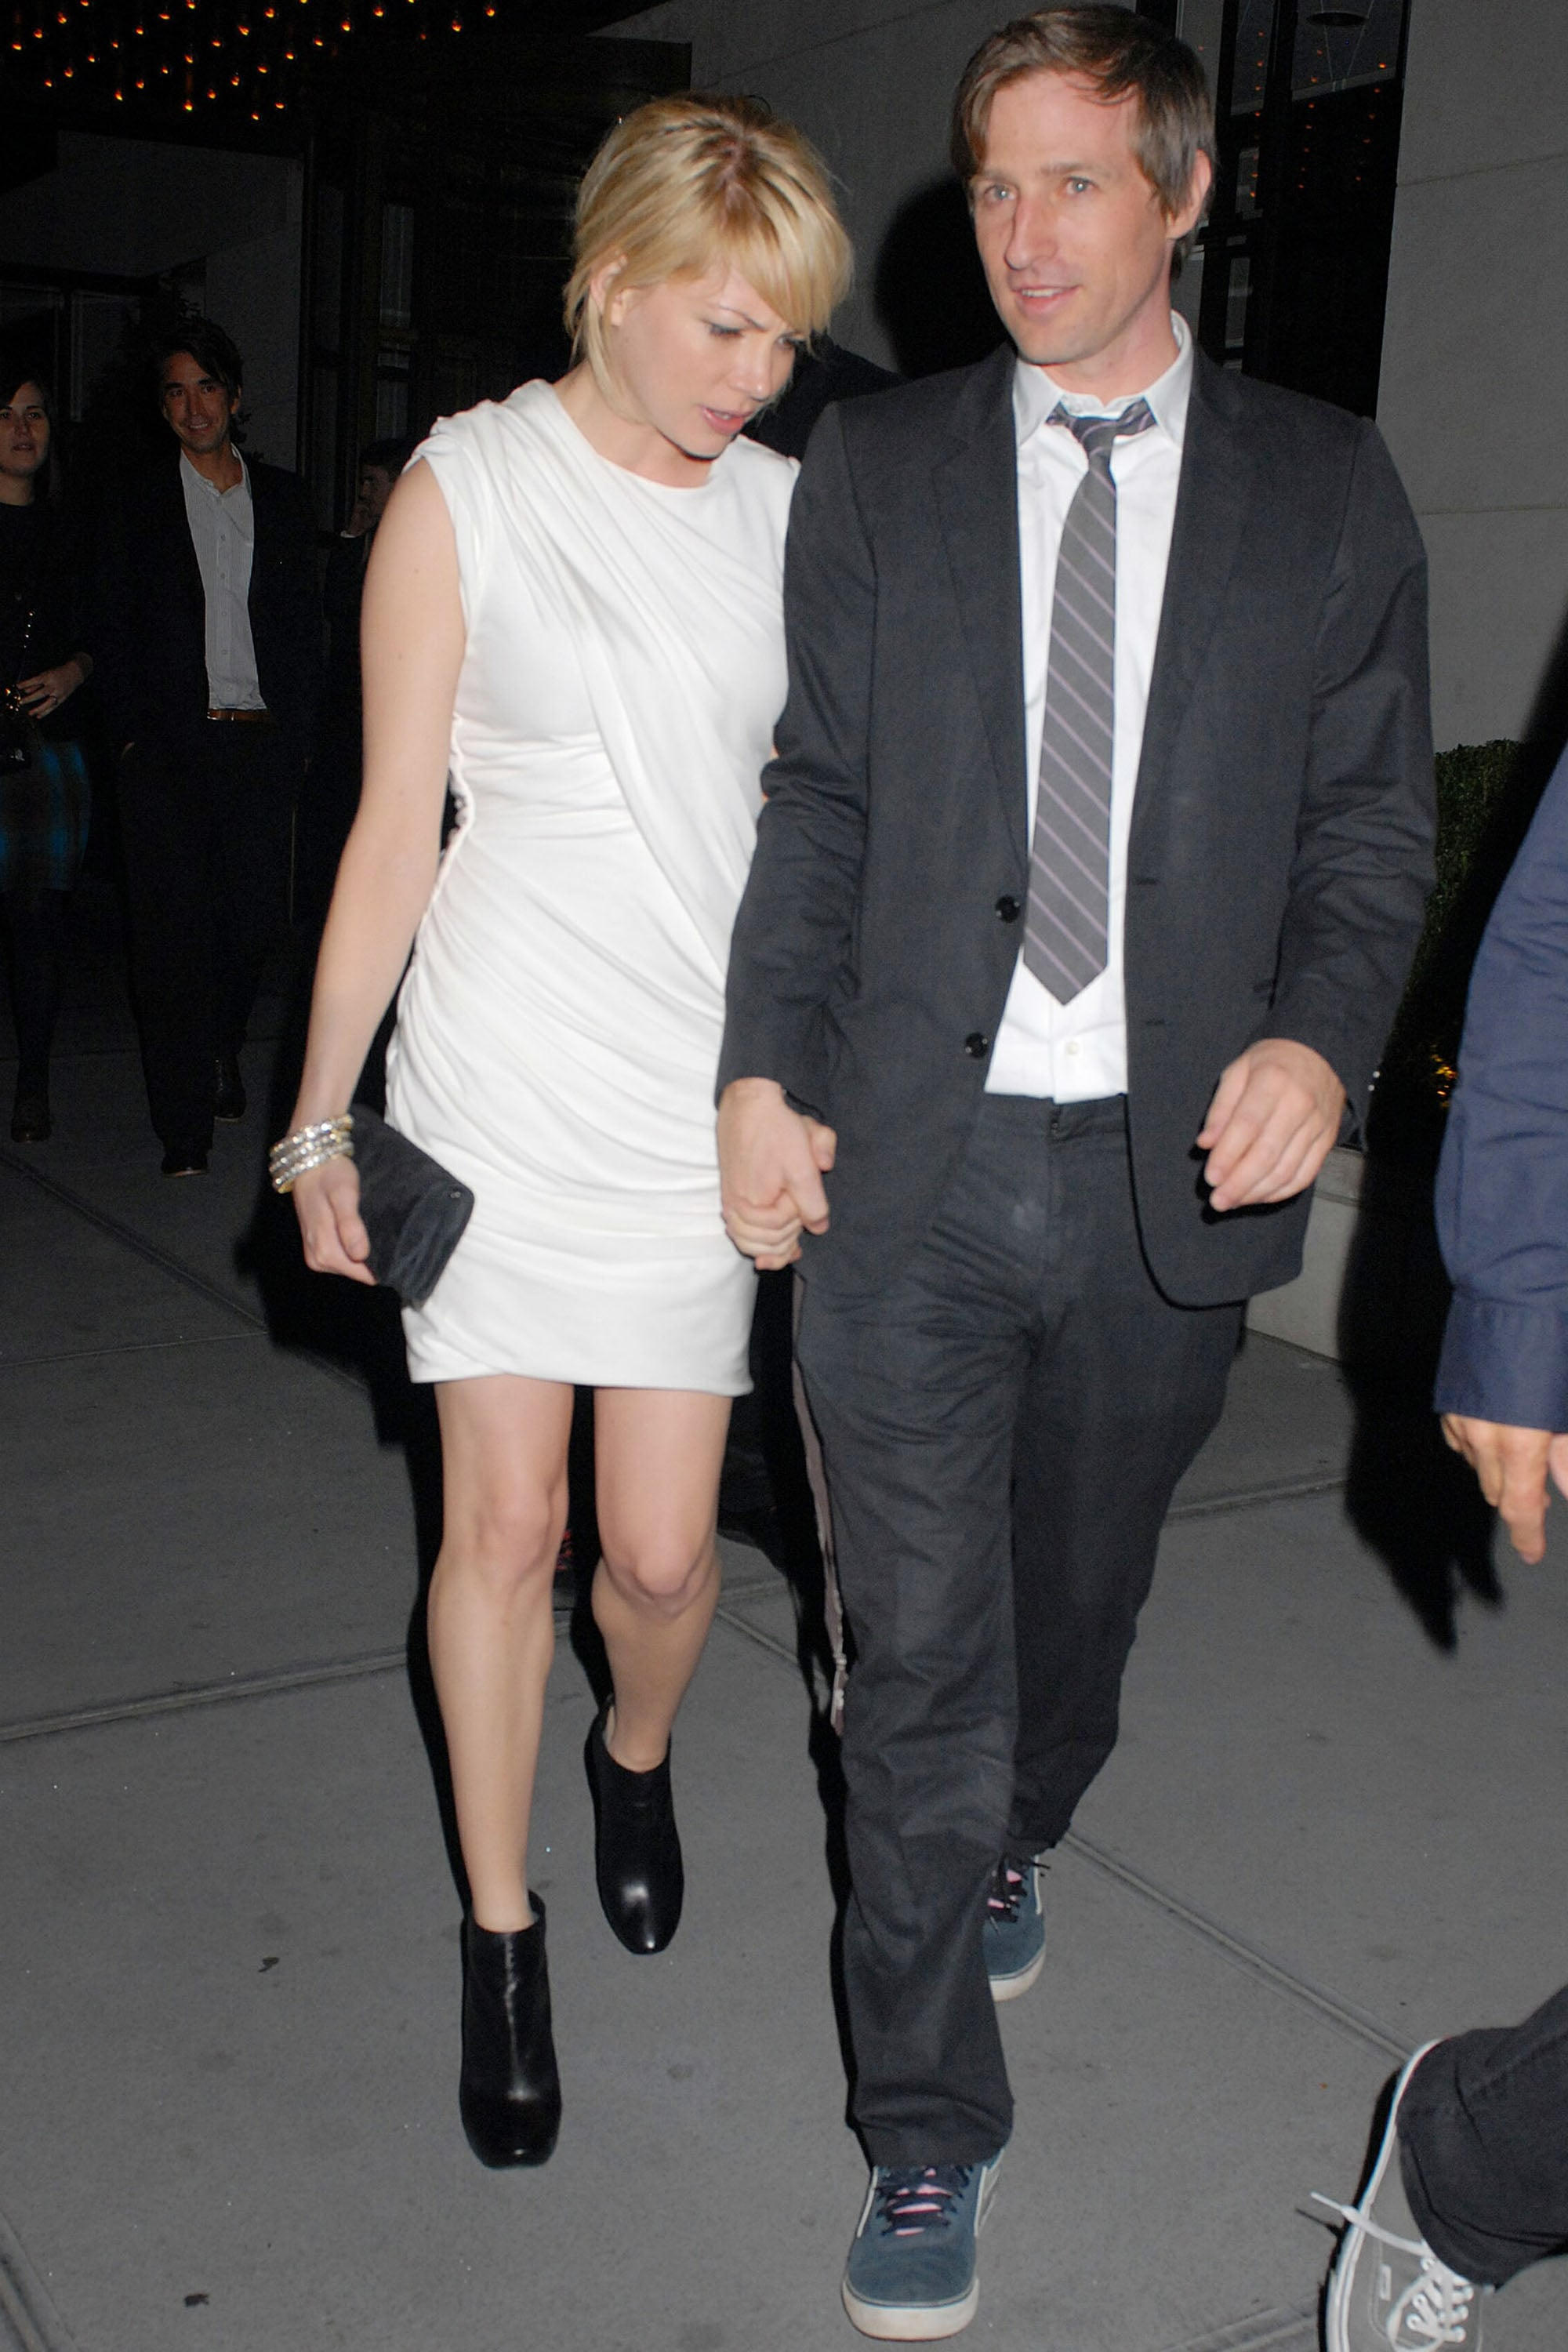 michelle williams dating spike jonze